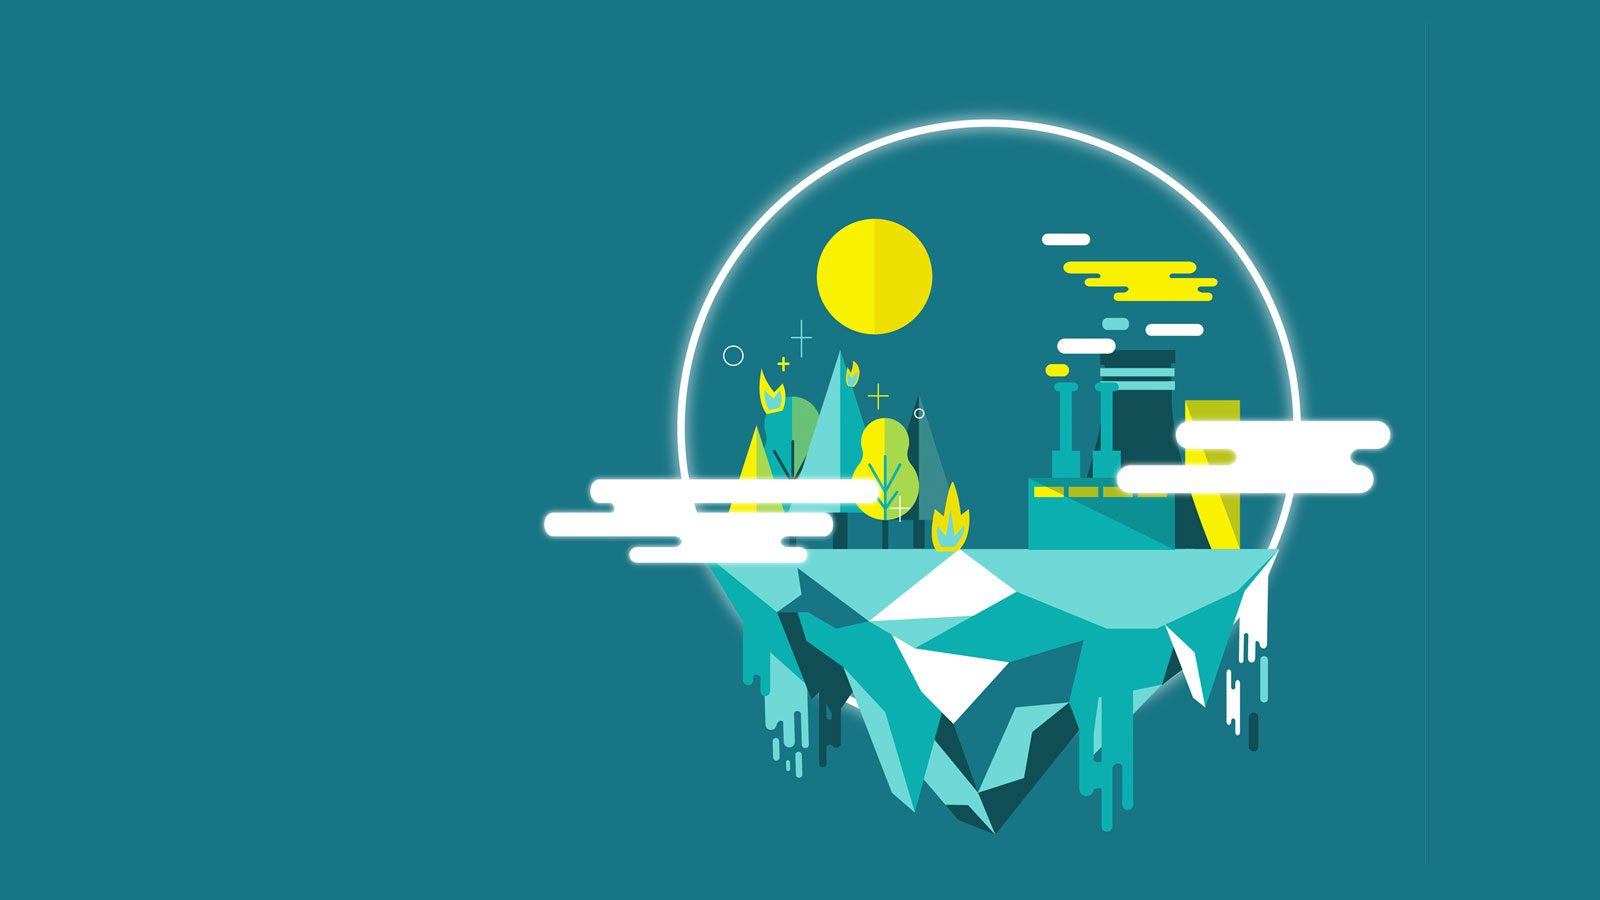 Illustration of abstract globe with city inside on blue background.